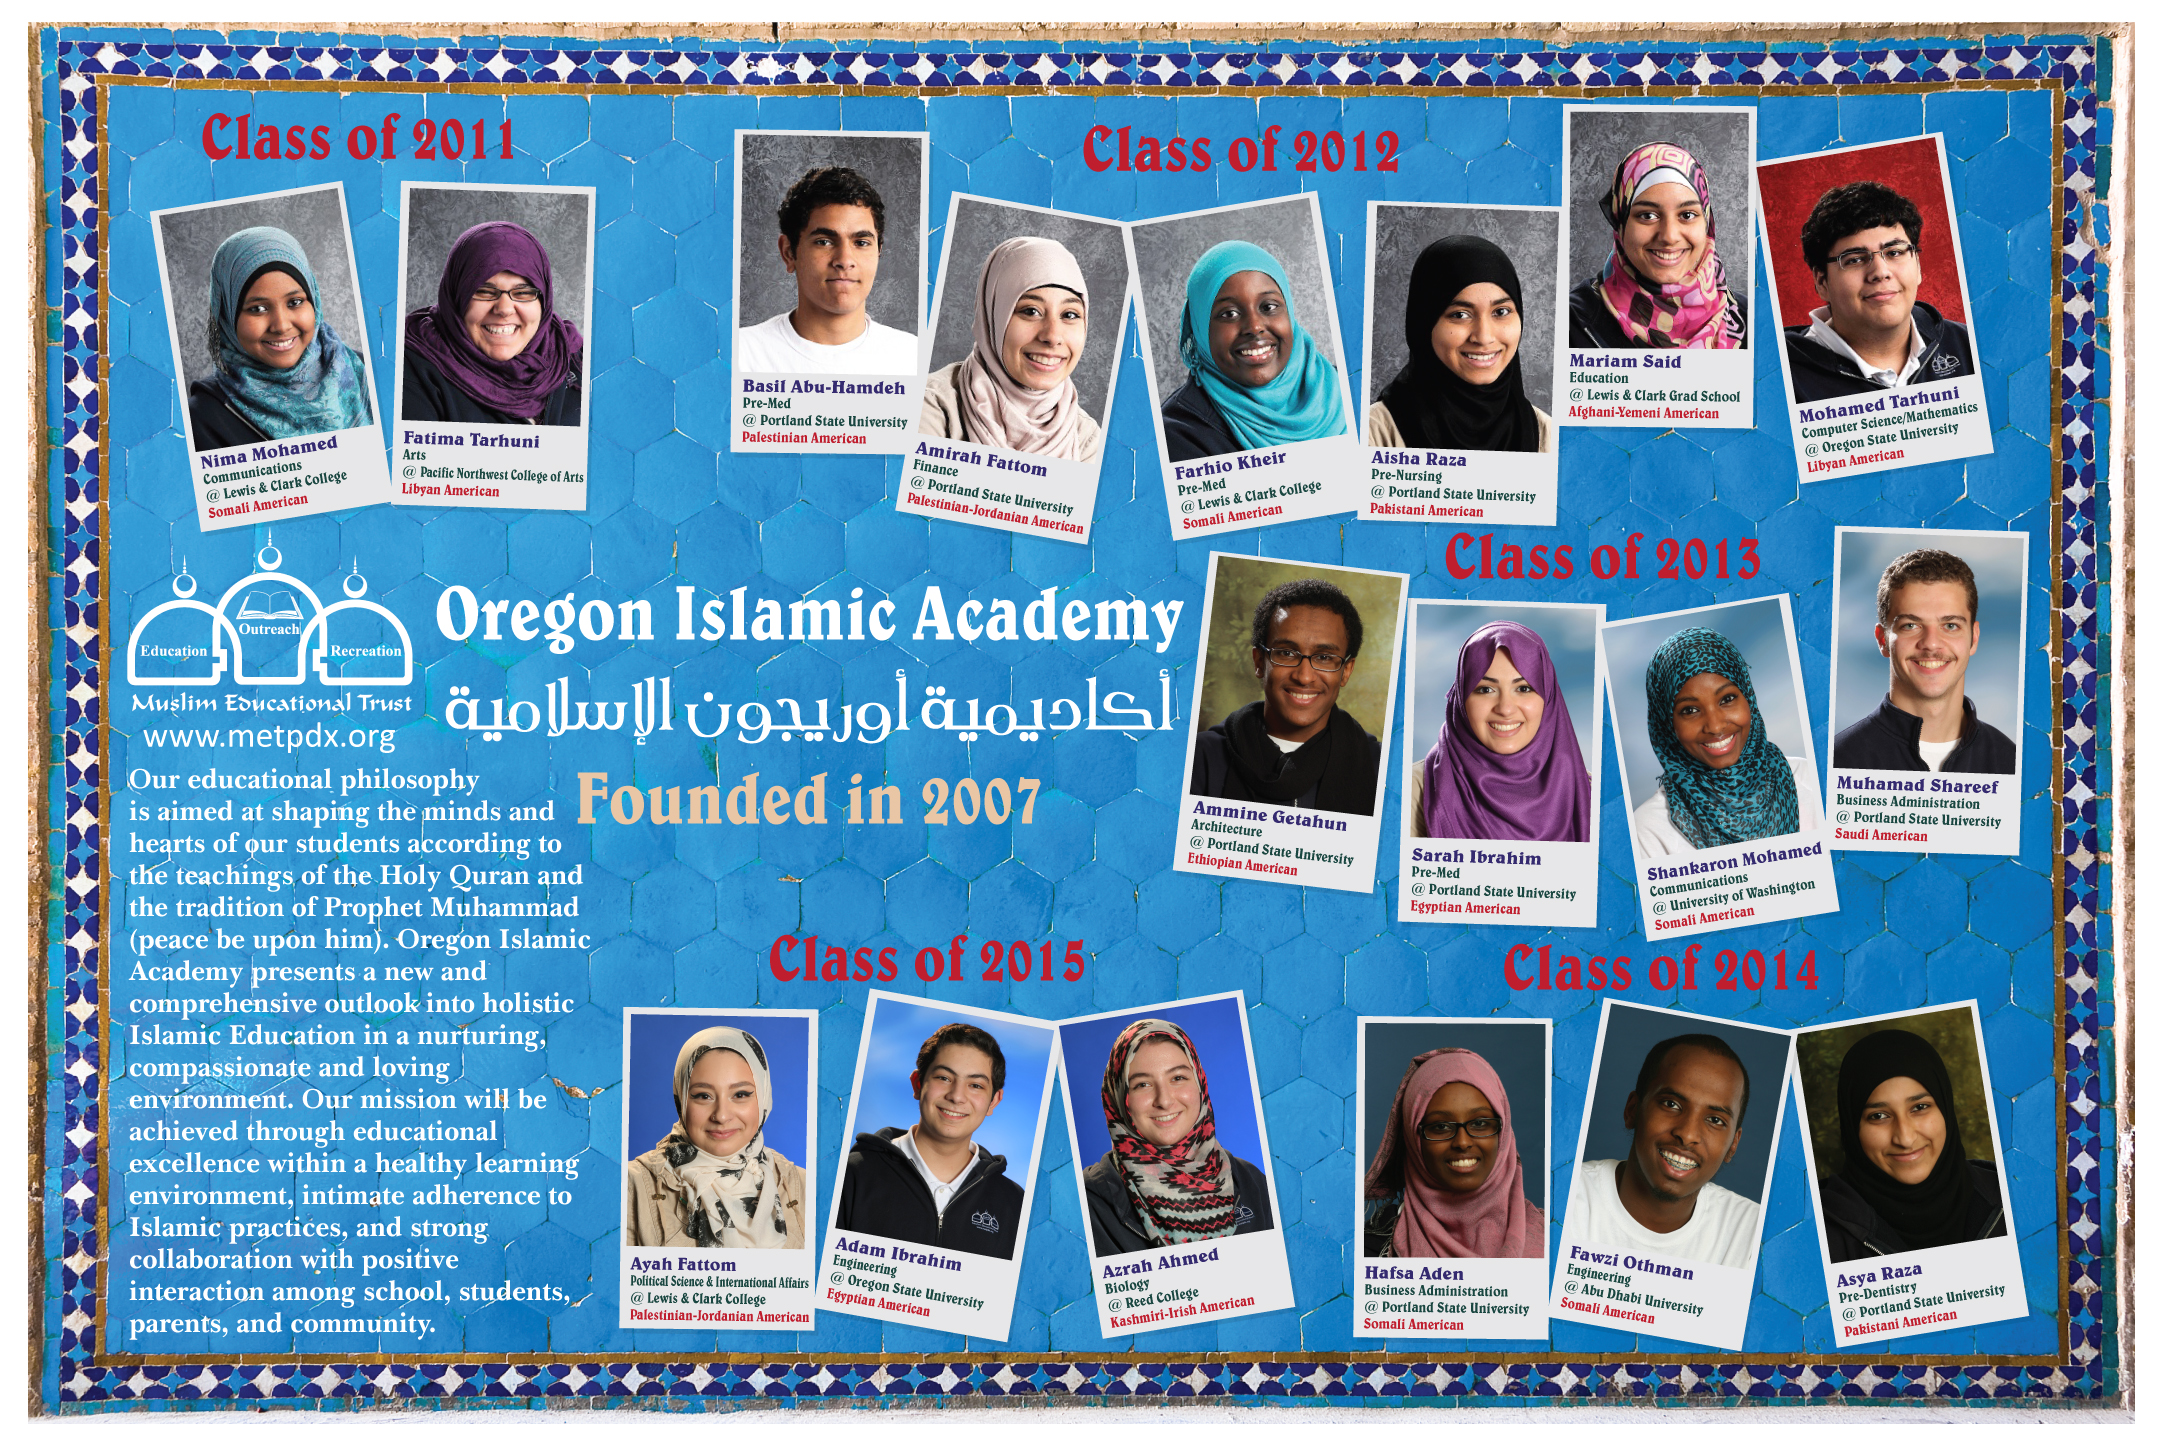 Photos of Oregon Islamic Academy alumni on a bright blue background.